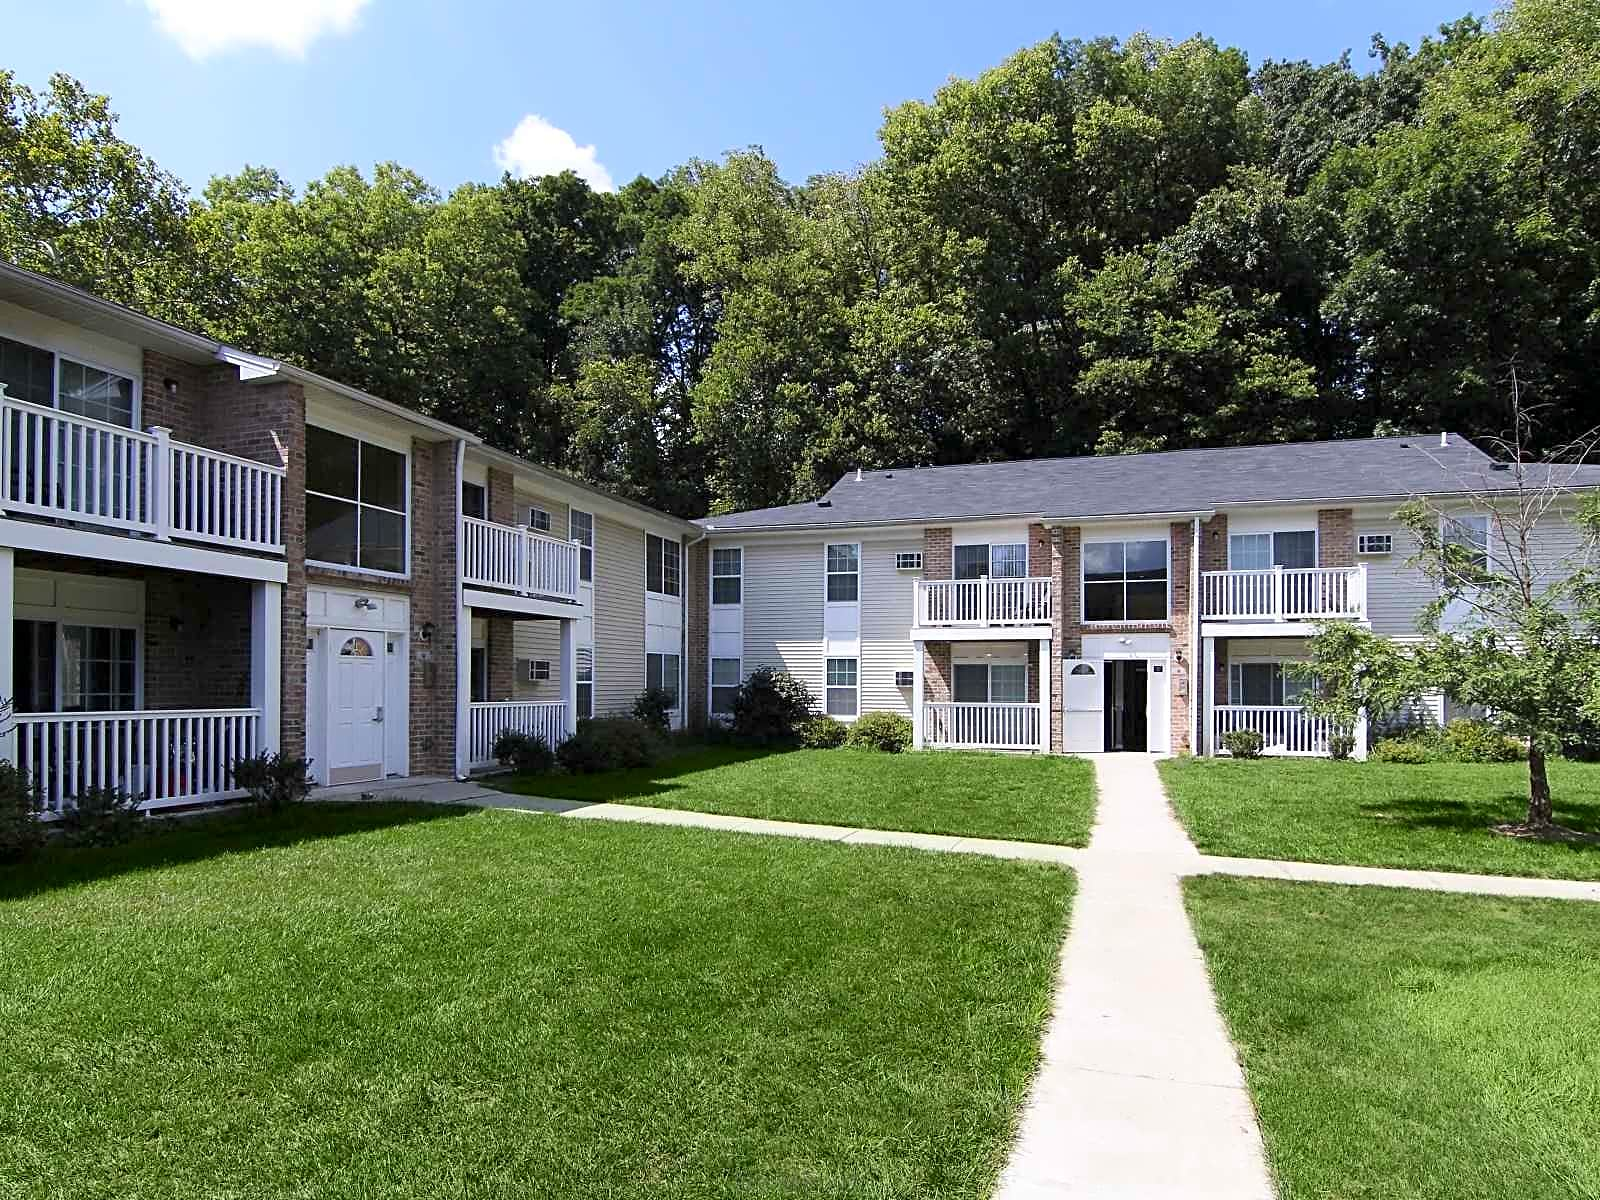 Apartments Near Lafayette Southgate Apartments for Lafayette College Students in Easton, PA